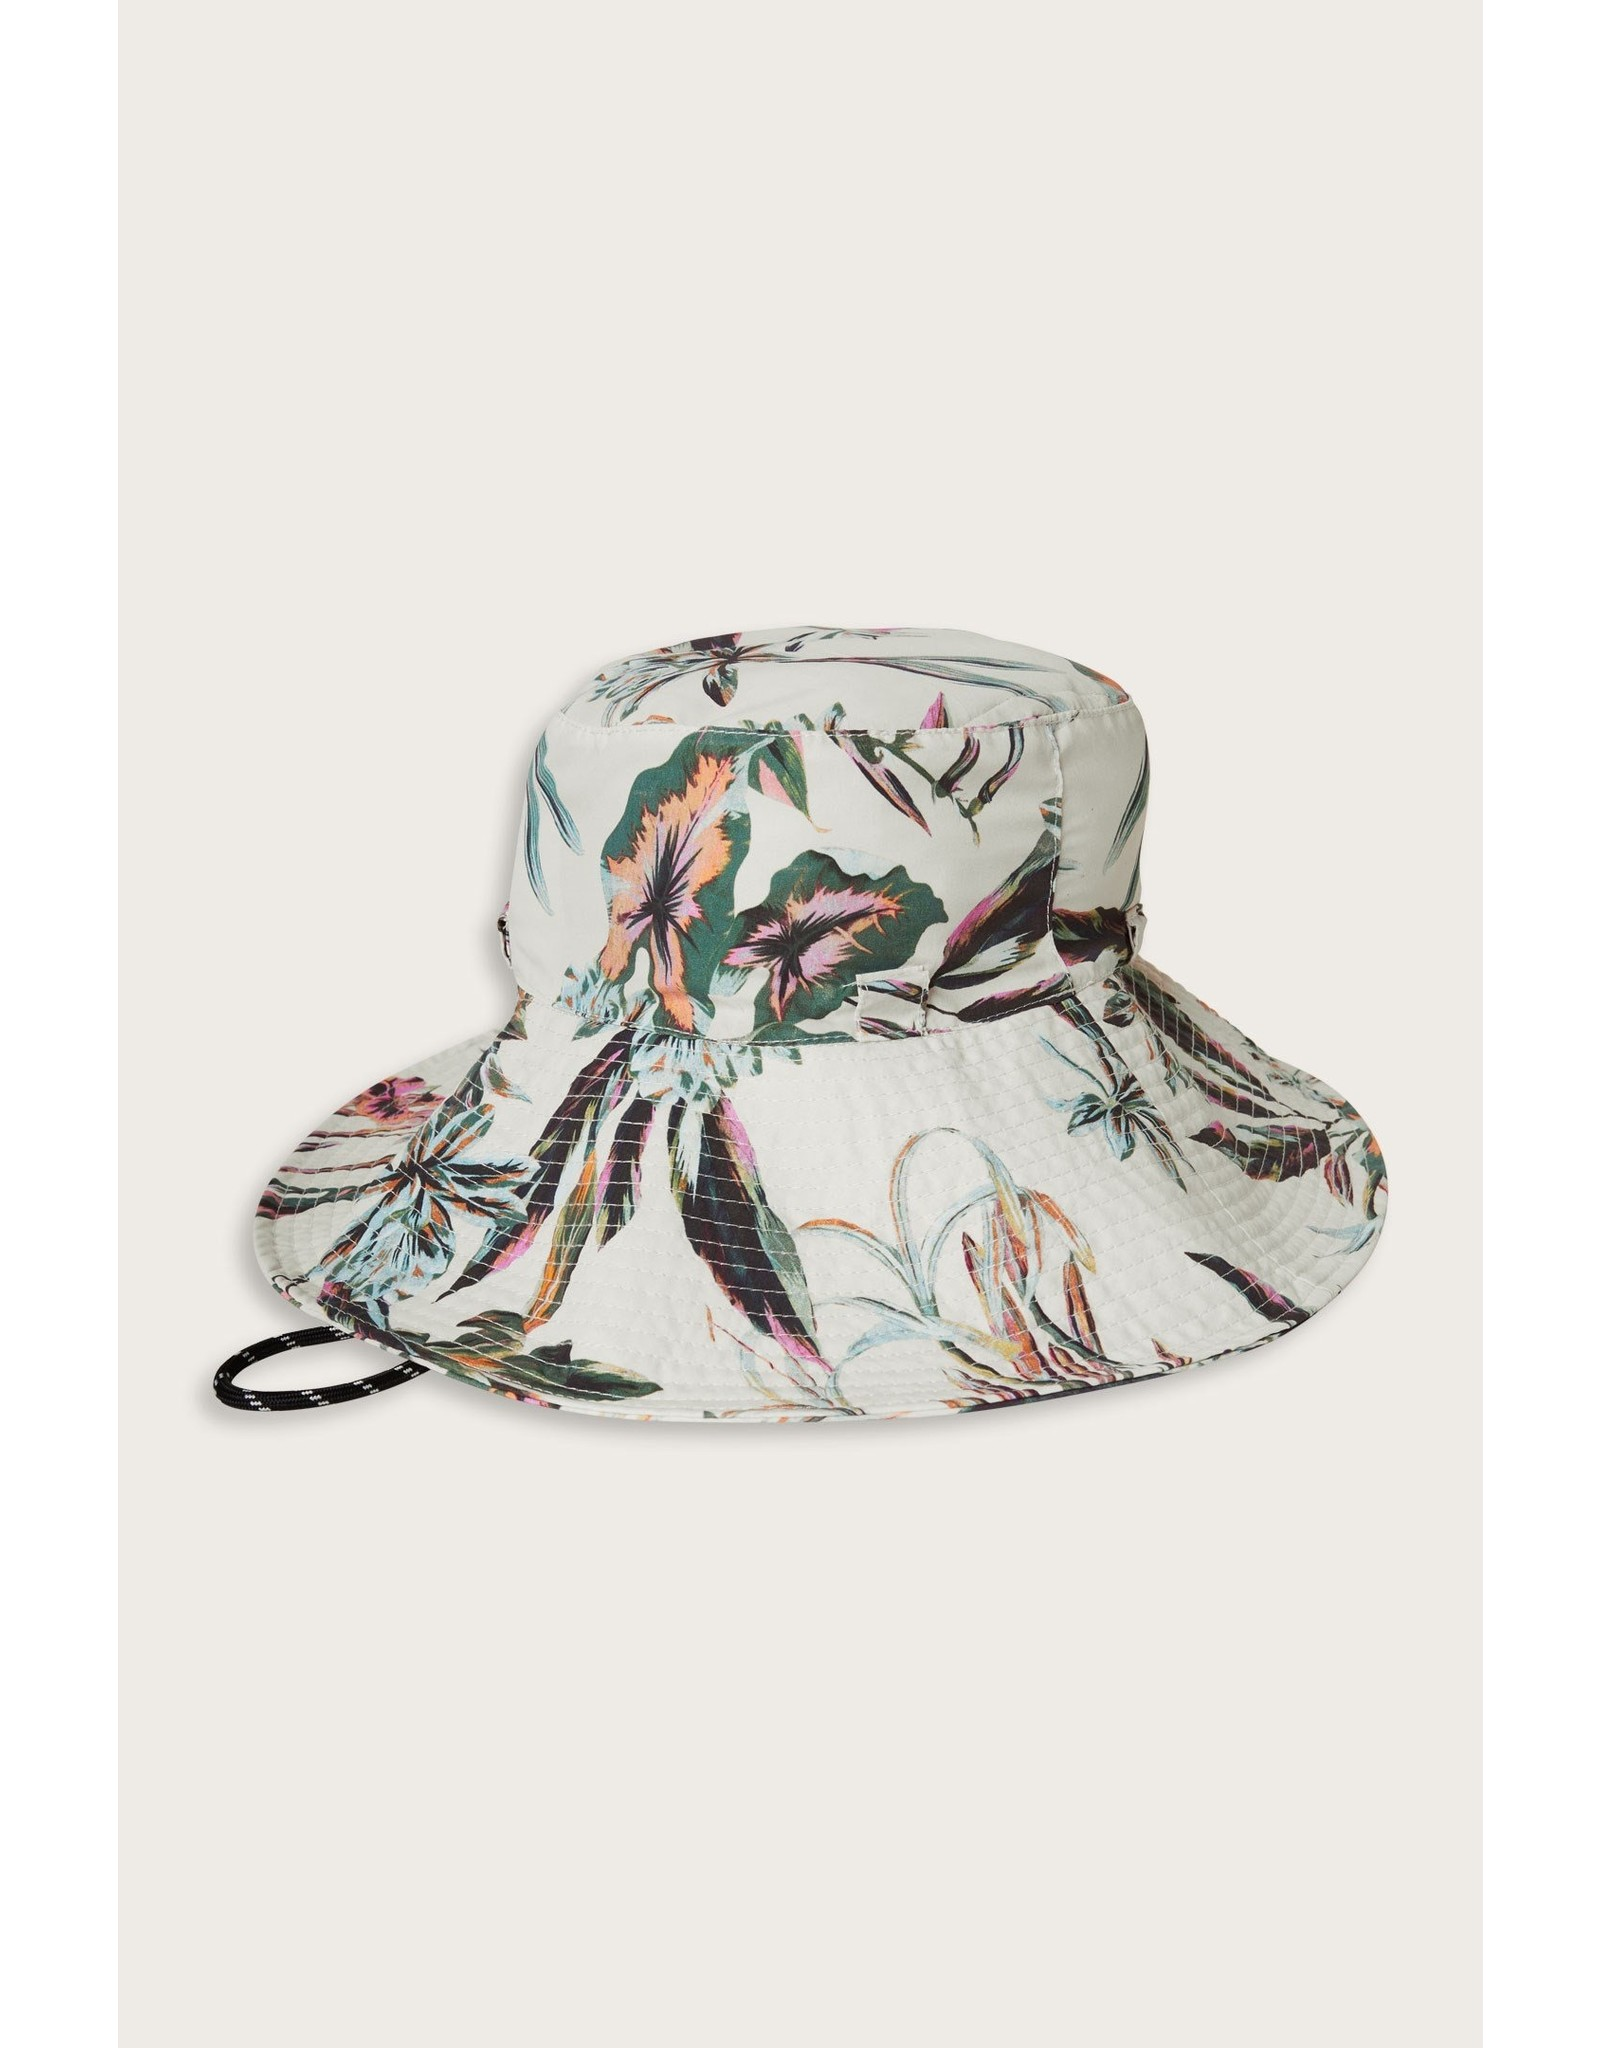 O'niell Locals Hat